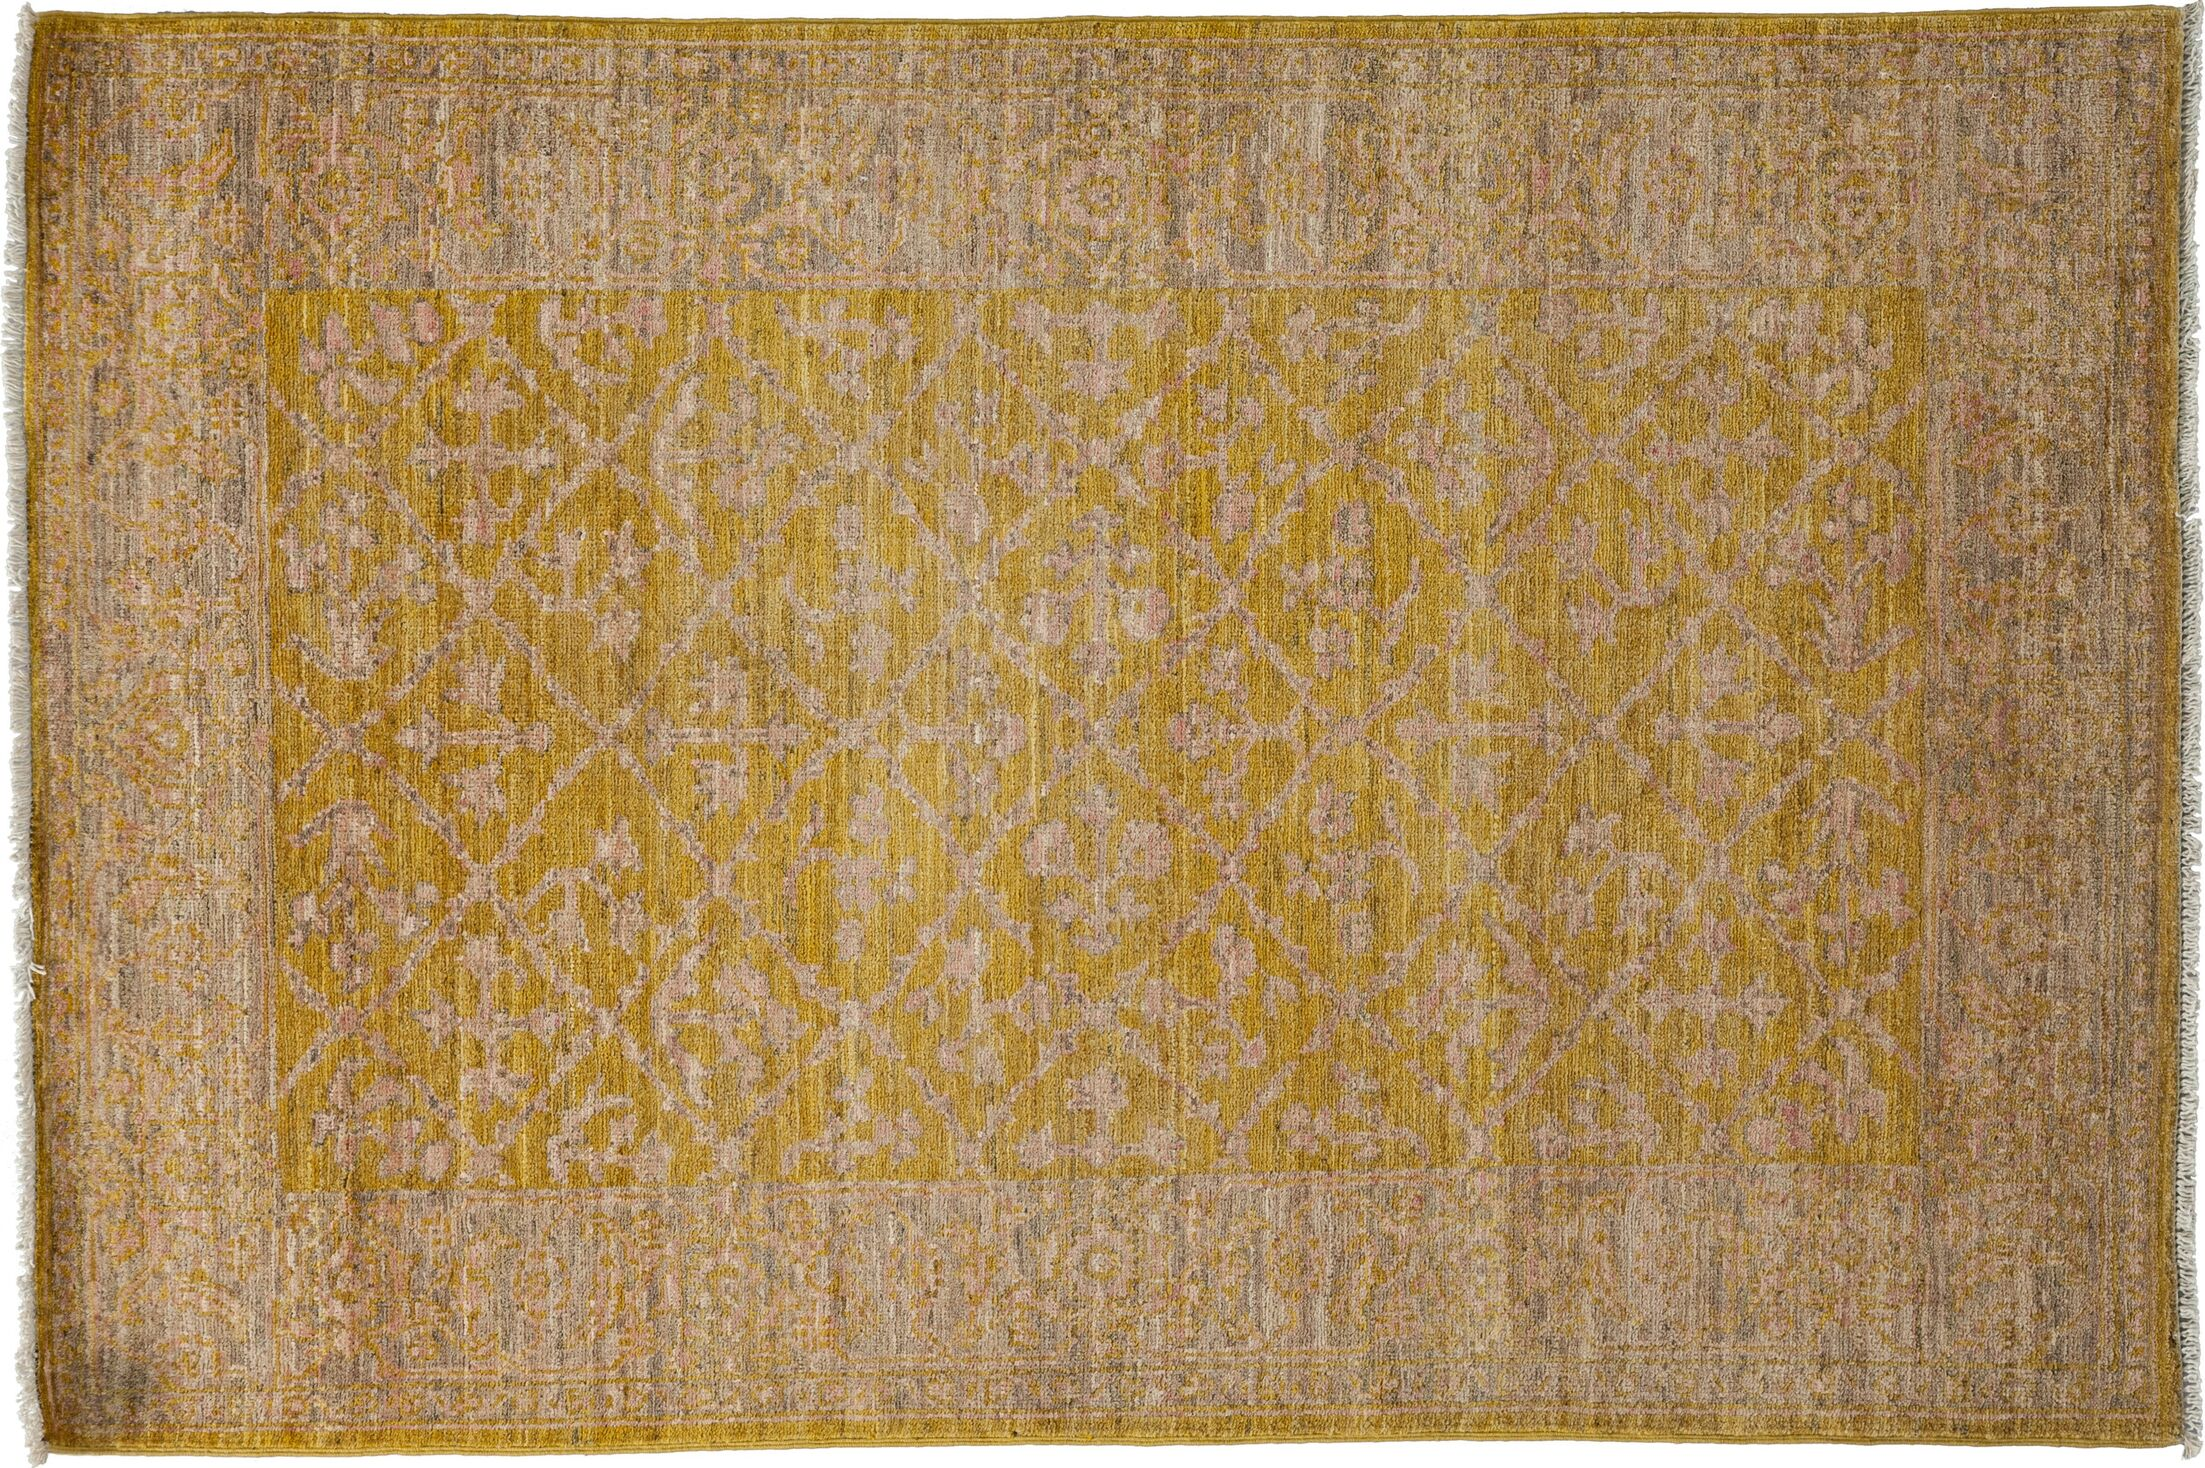 One-of-a-Kind Oushak Hand-Knotted Yellow Area Rug Rug Size: Rectangle 4'1